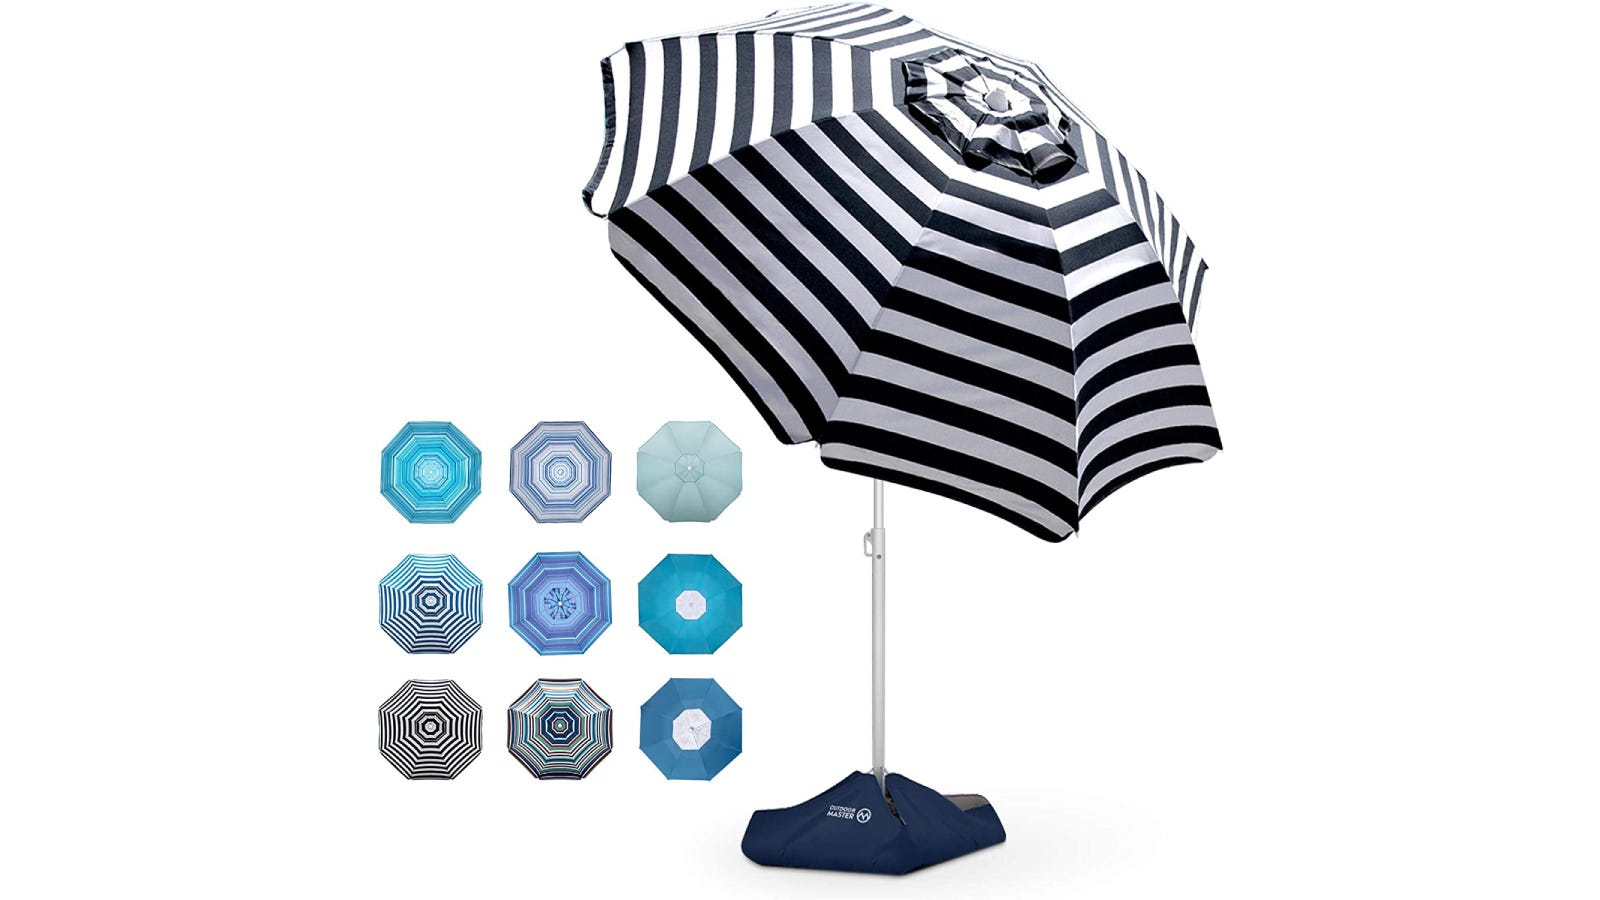 A striped standing beach umbrella with different color options shown.